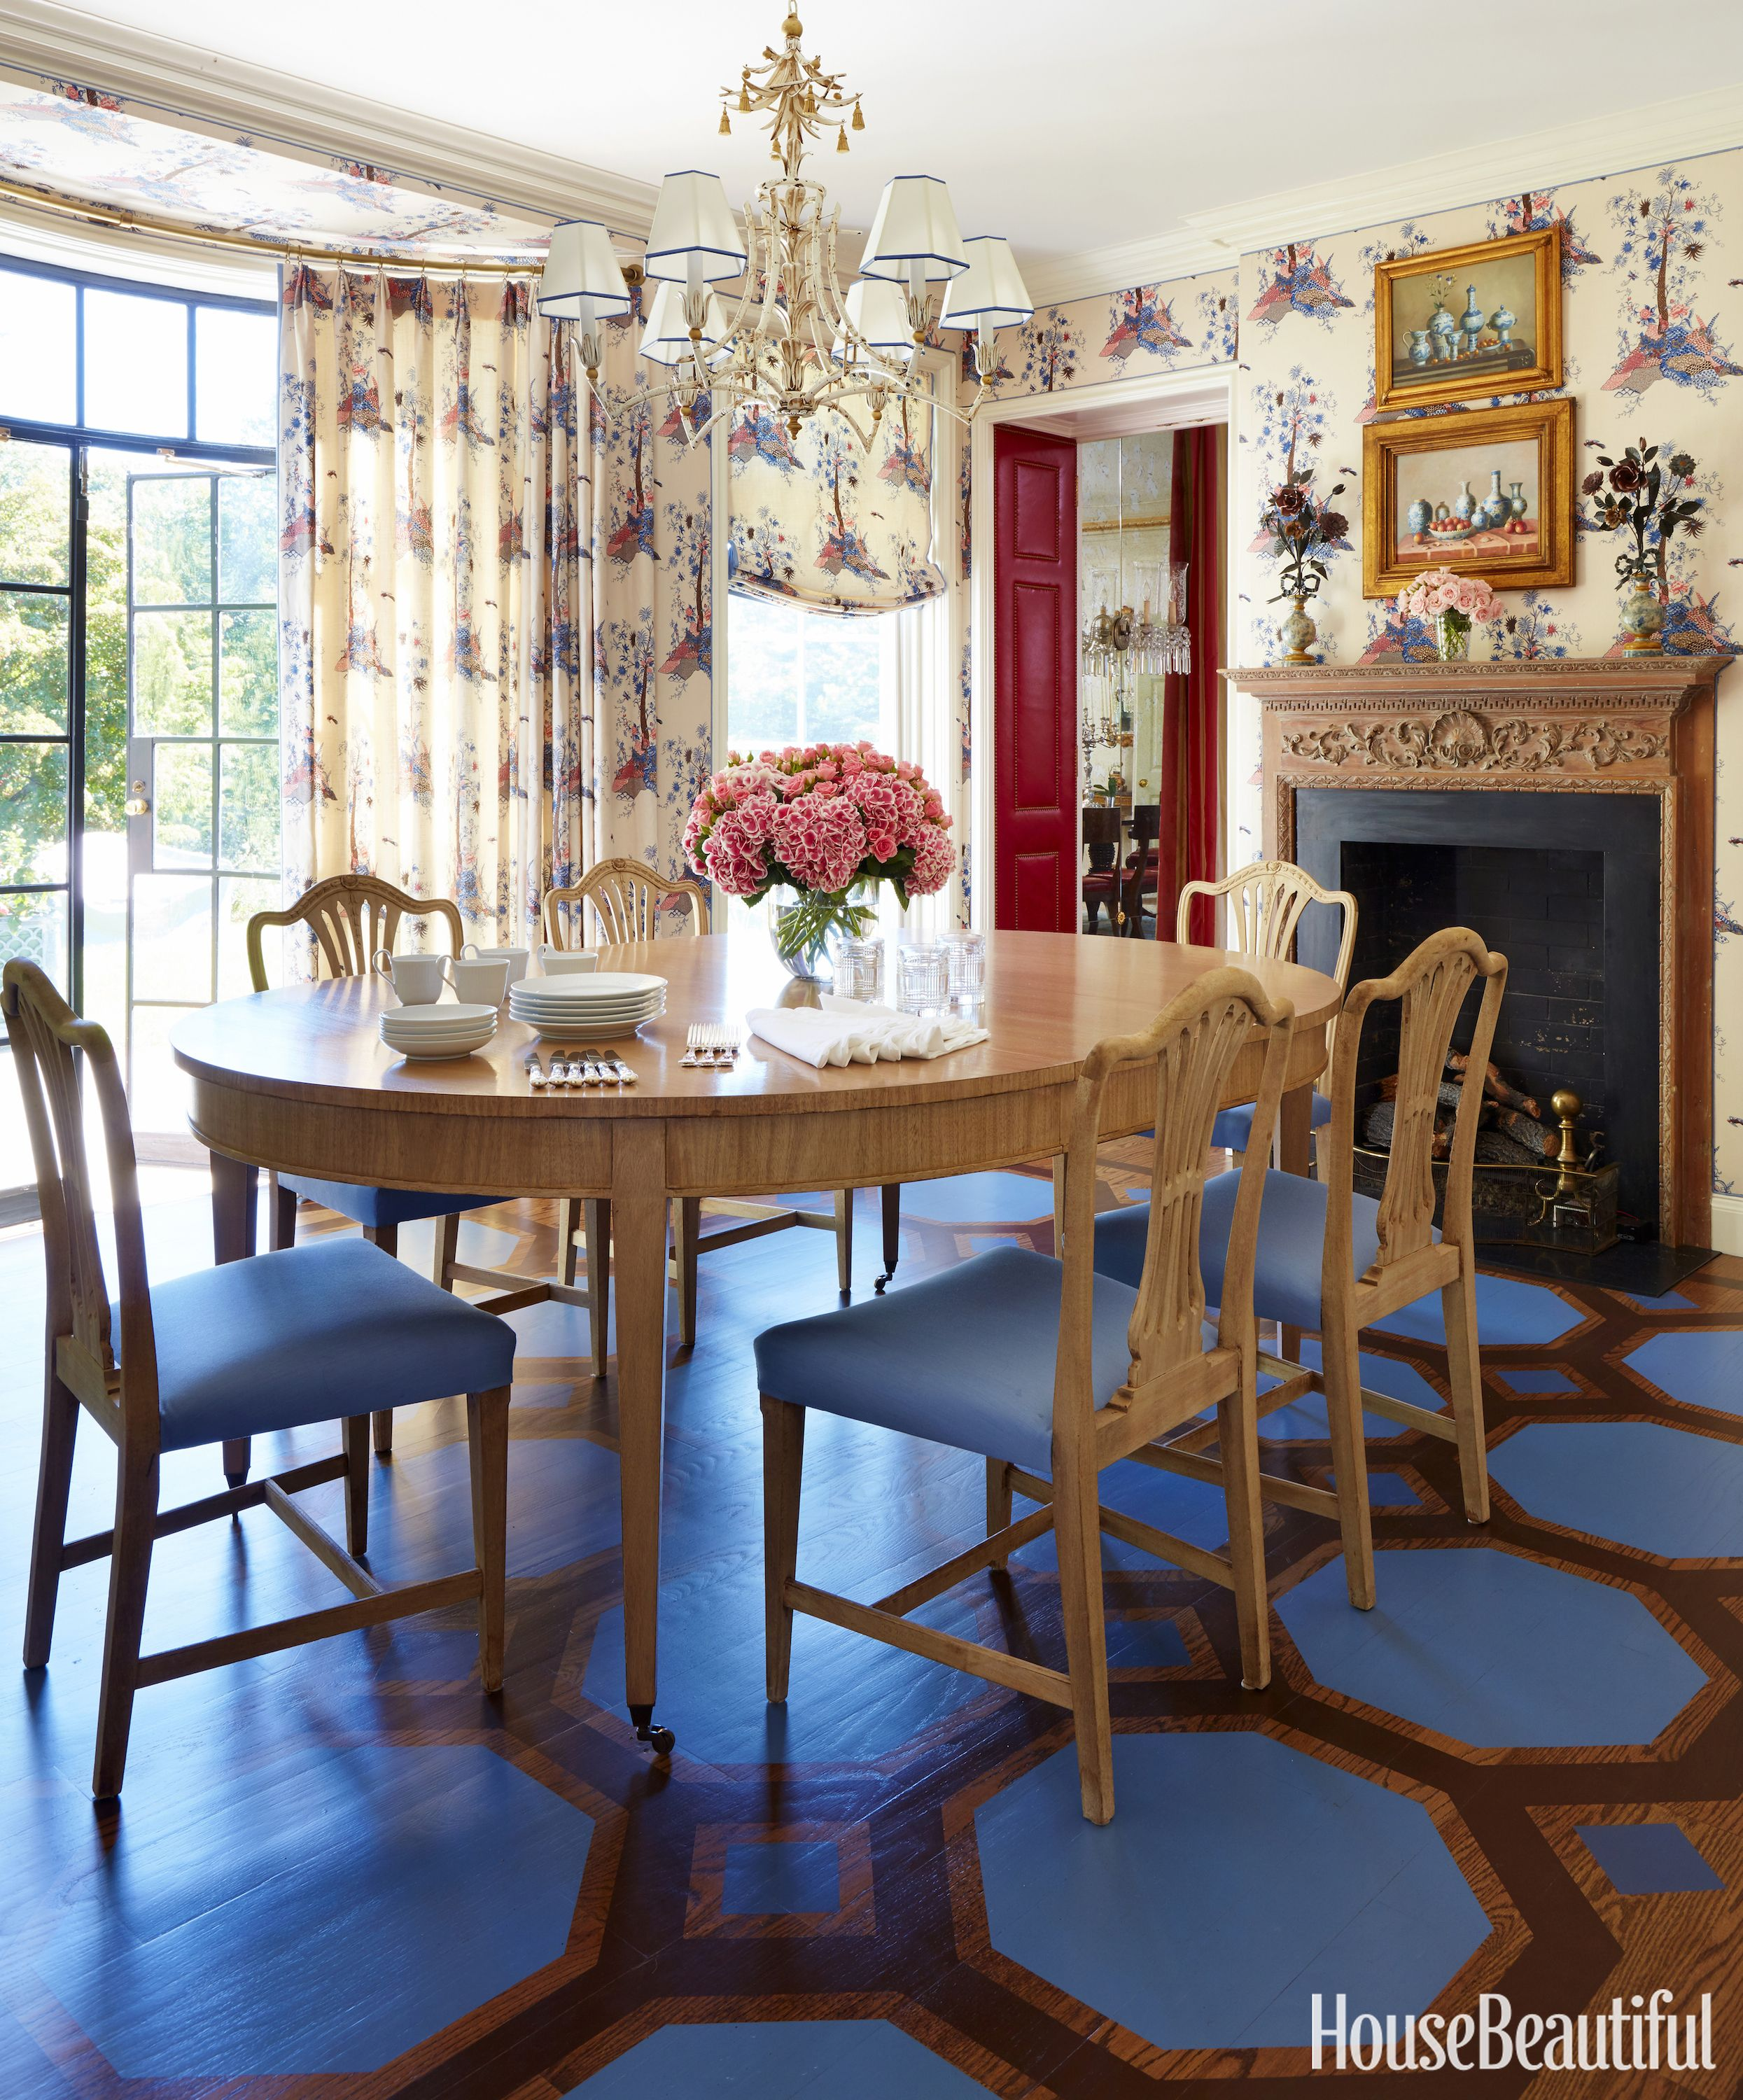 50 Best Dining Room Decorating Ideas, Furniture, Designs and Pictures